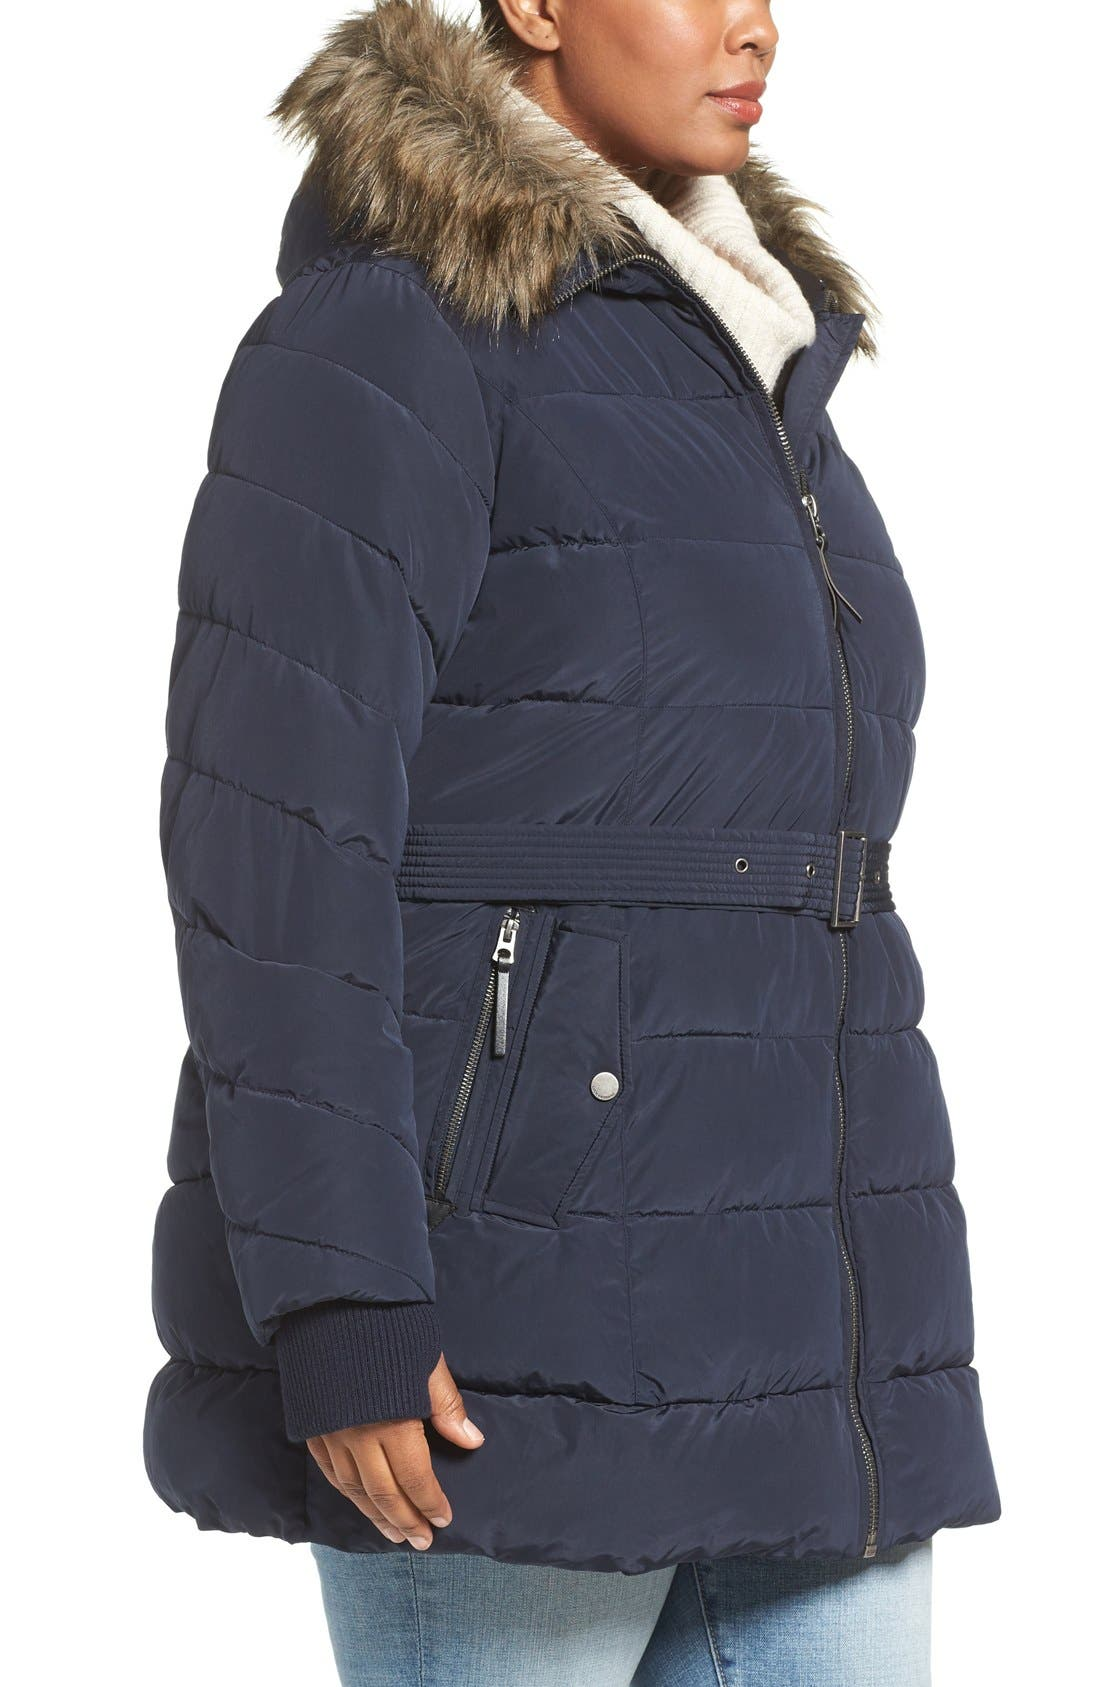 Alternate Image 3  - Lucky Brand Belted Puffer Jacket with Faux Fur Trim (Plus Size)